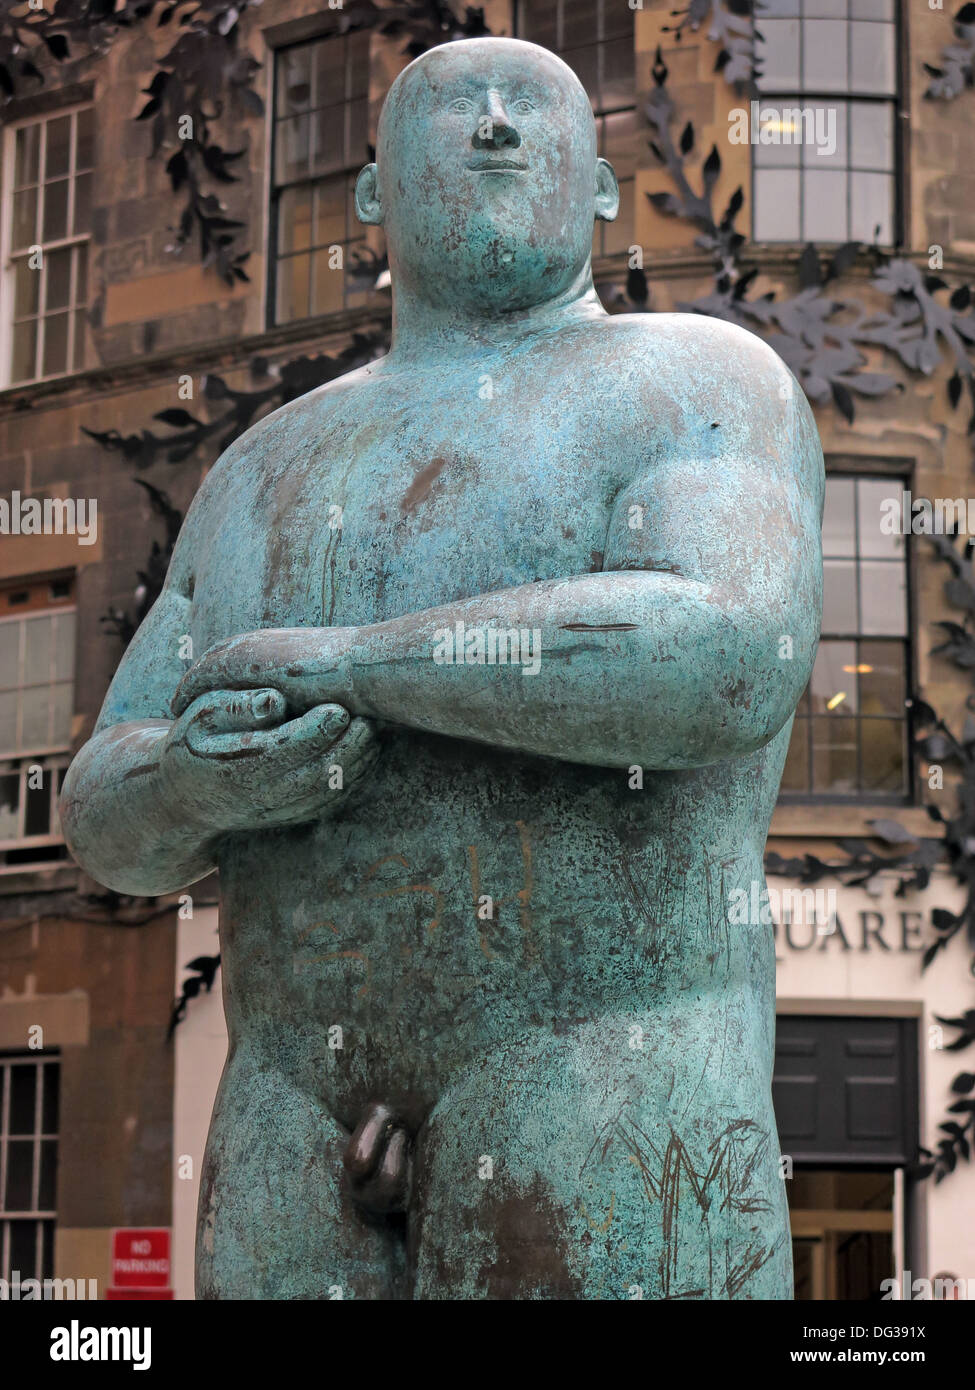 sq,sq.,centre,center,green,bronze,naked,man,Statue,outside,Princes,Square,shopping,Mall,48,Buchanan,Street,in,central,Glasgow,Scotland,UK,G1,3JN,As,proud,As,art,artist,work,works,gotonysmith